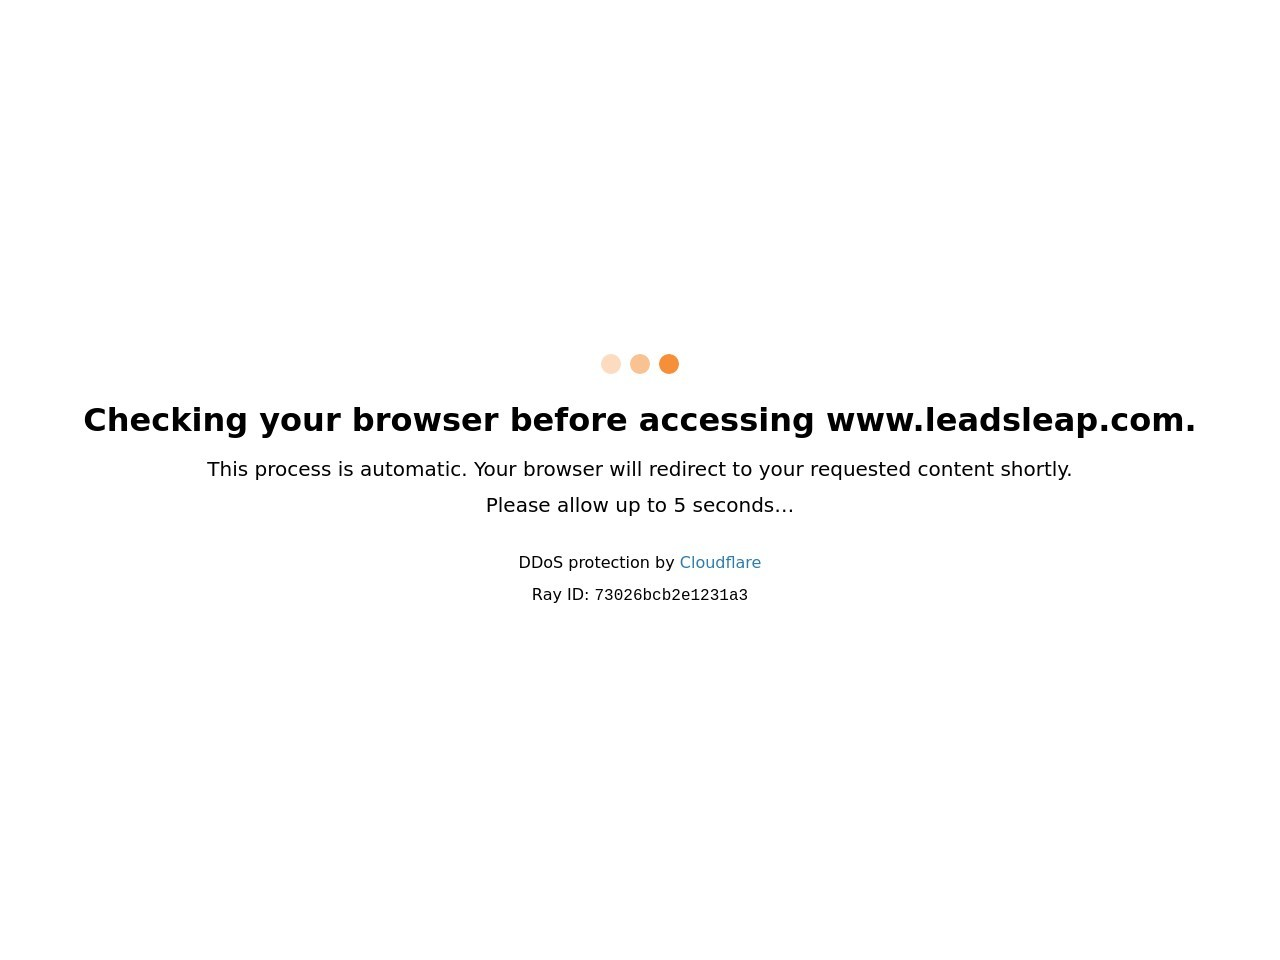 Attraction Marketing + LeadsLeap Advertising = ? | LeadsLeap